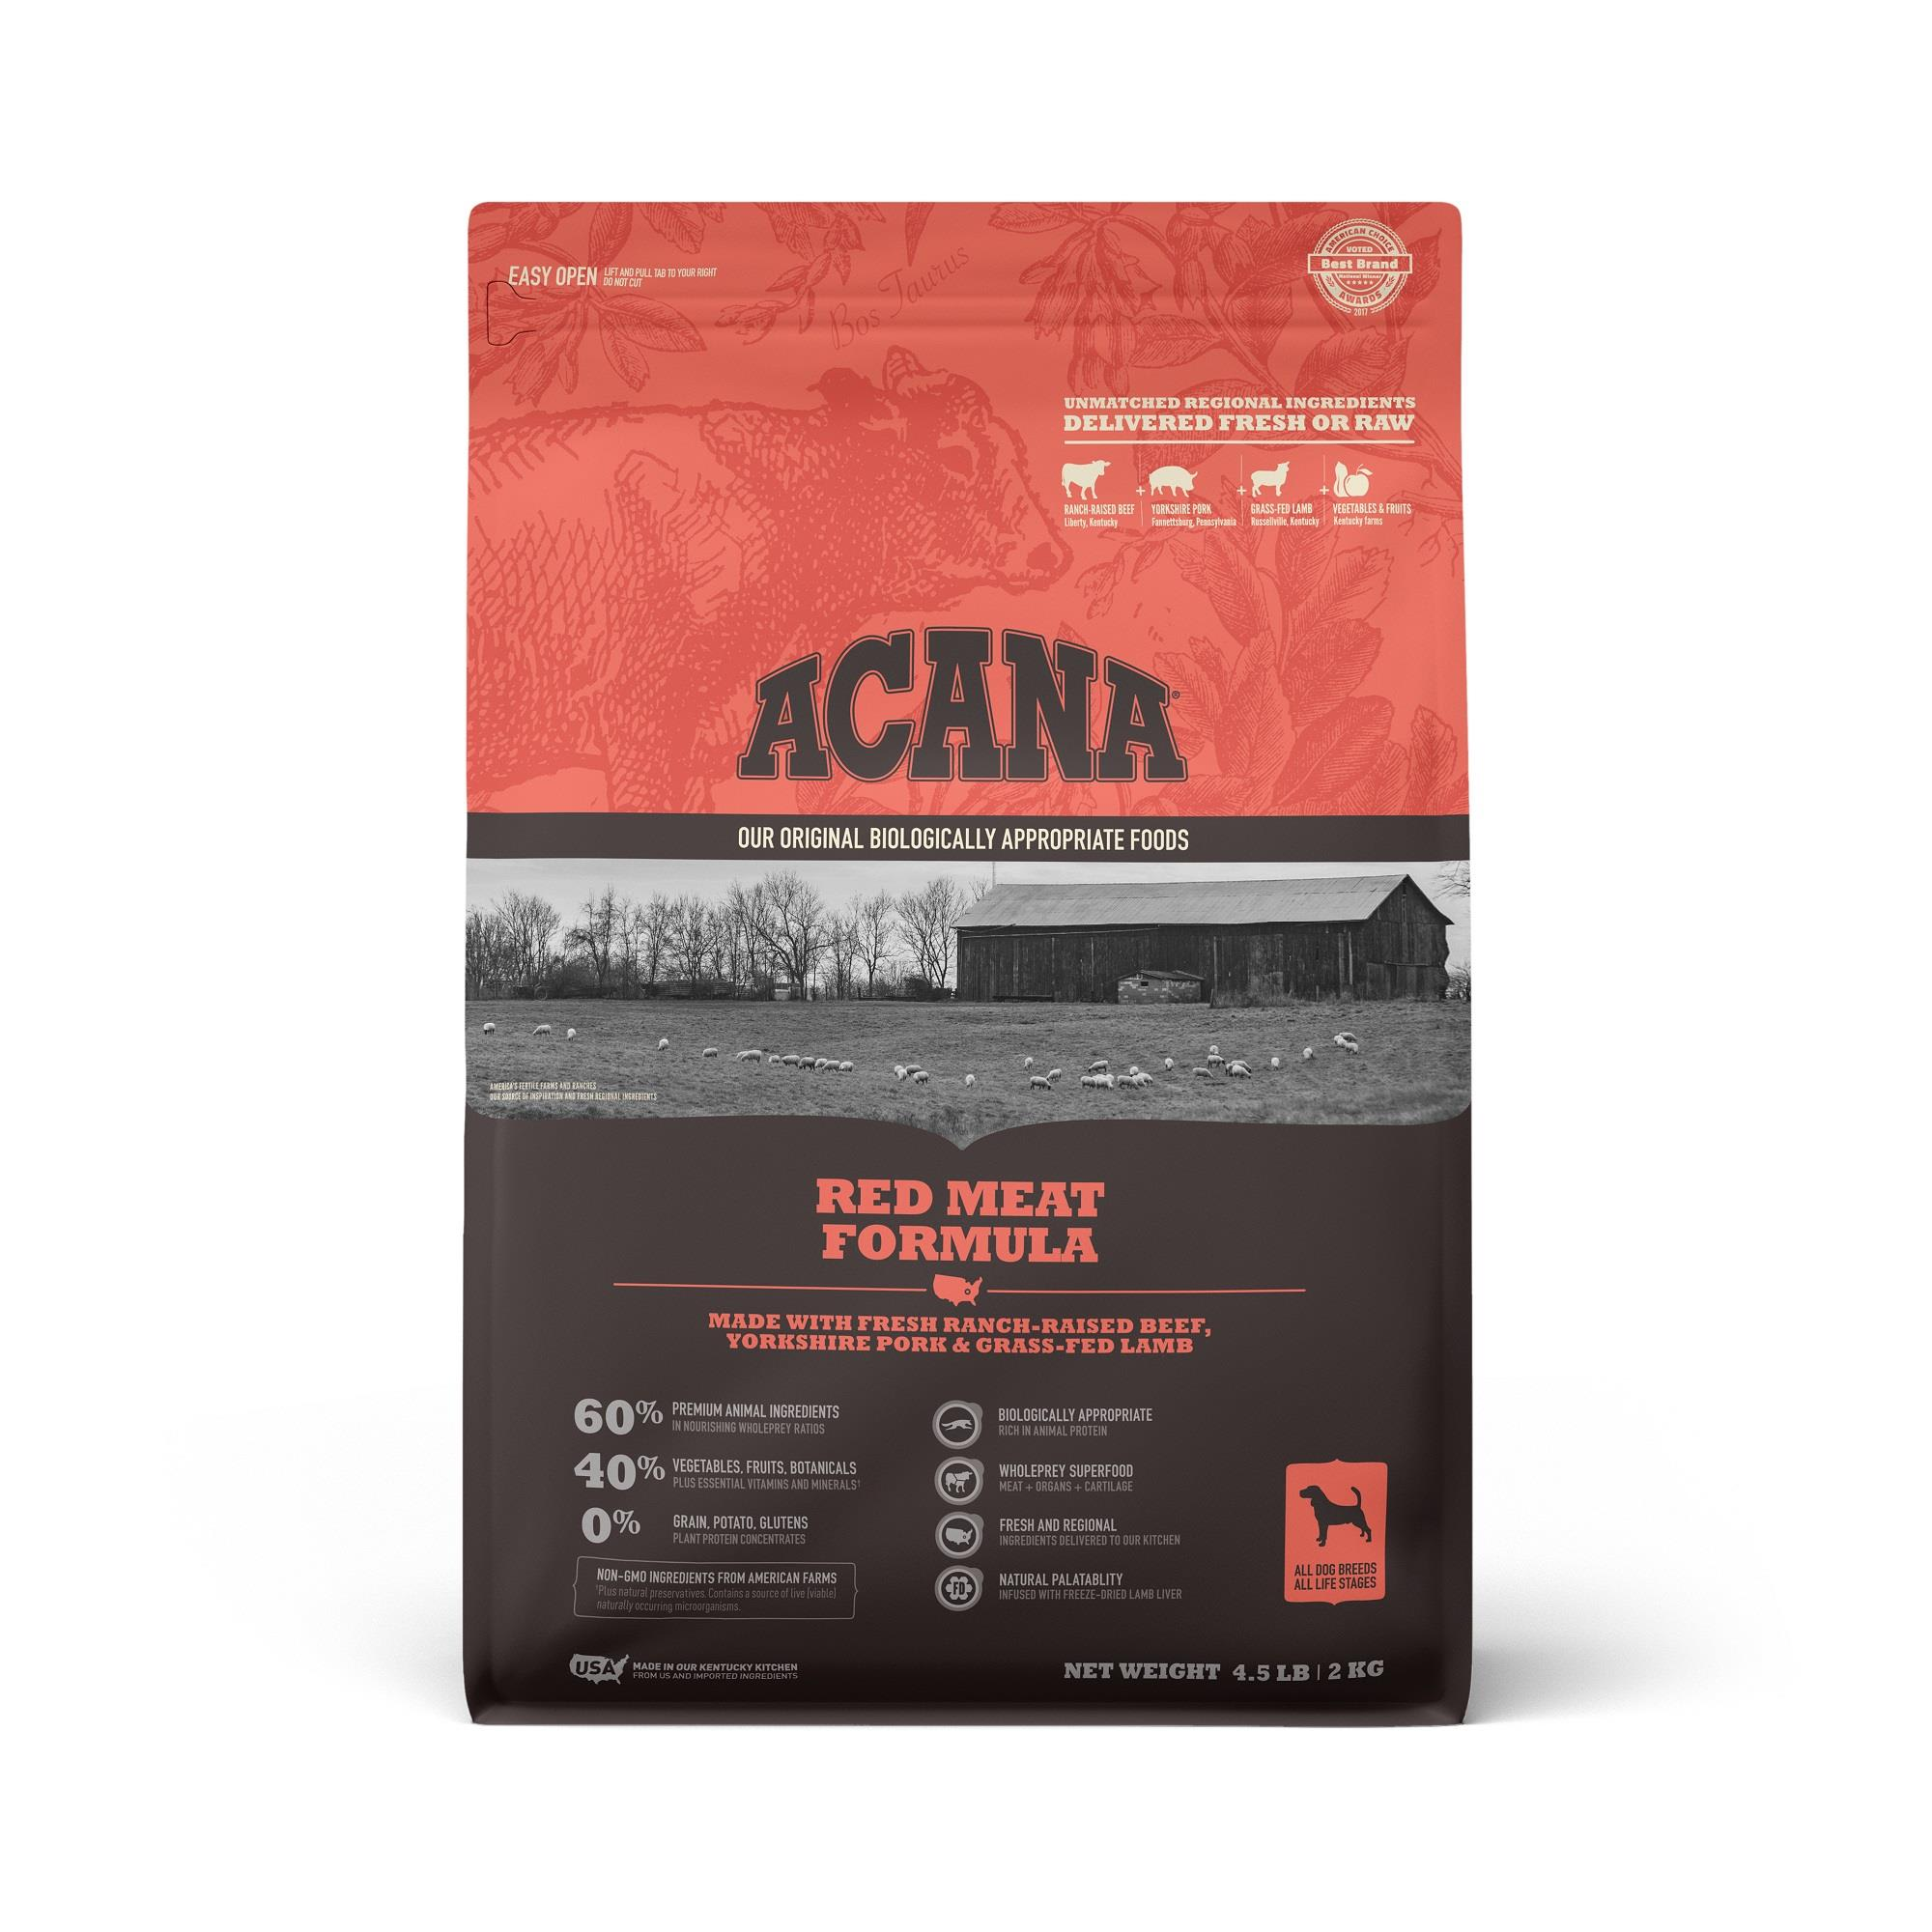 ACANA Grain-Free Red Meat Ranch-Raised Beef Yorkshire Pork Grass-Fed Lamb Dry Dog Food, 4.5 lbs.